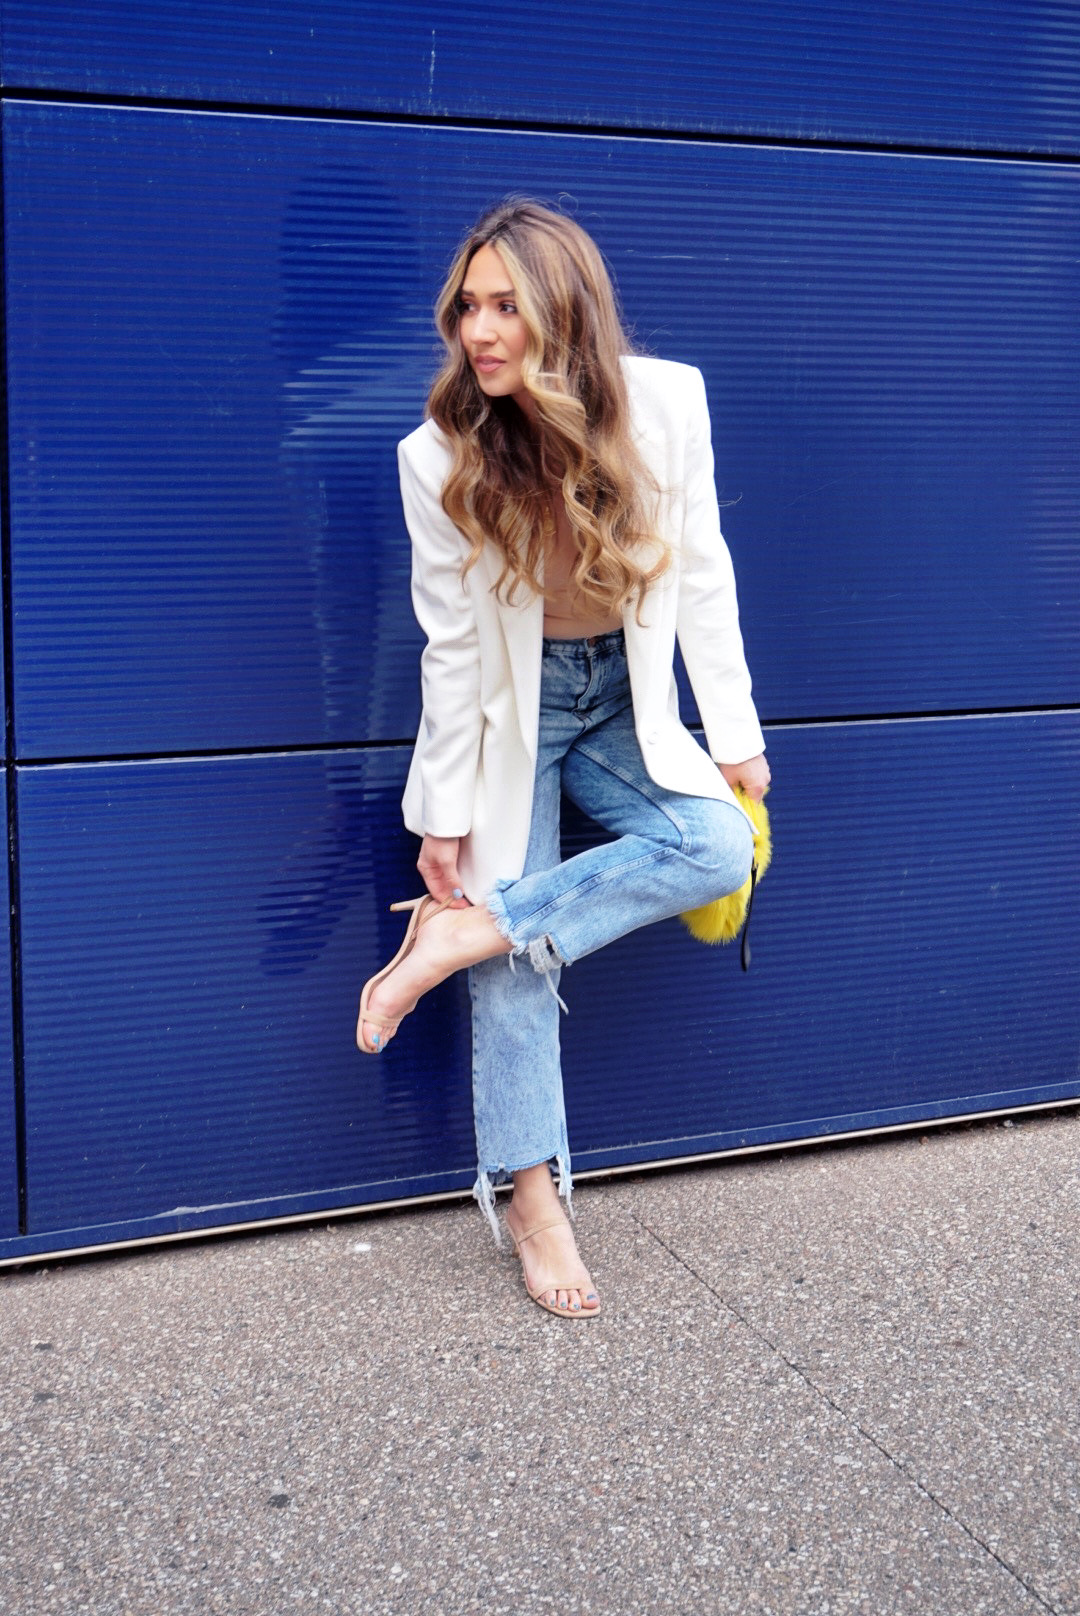 white-blazer-jean-shorts-light-wash-jeans-outfit-2-ways-to-style-cute-outfit-inspo